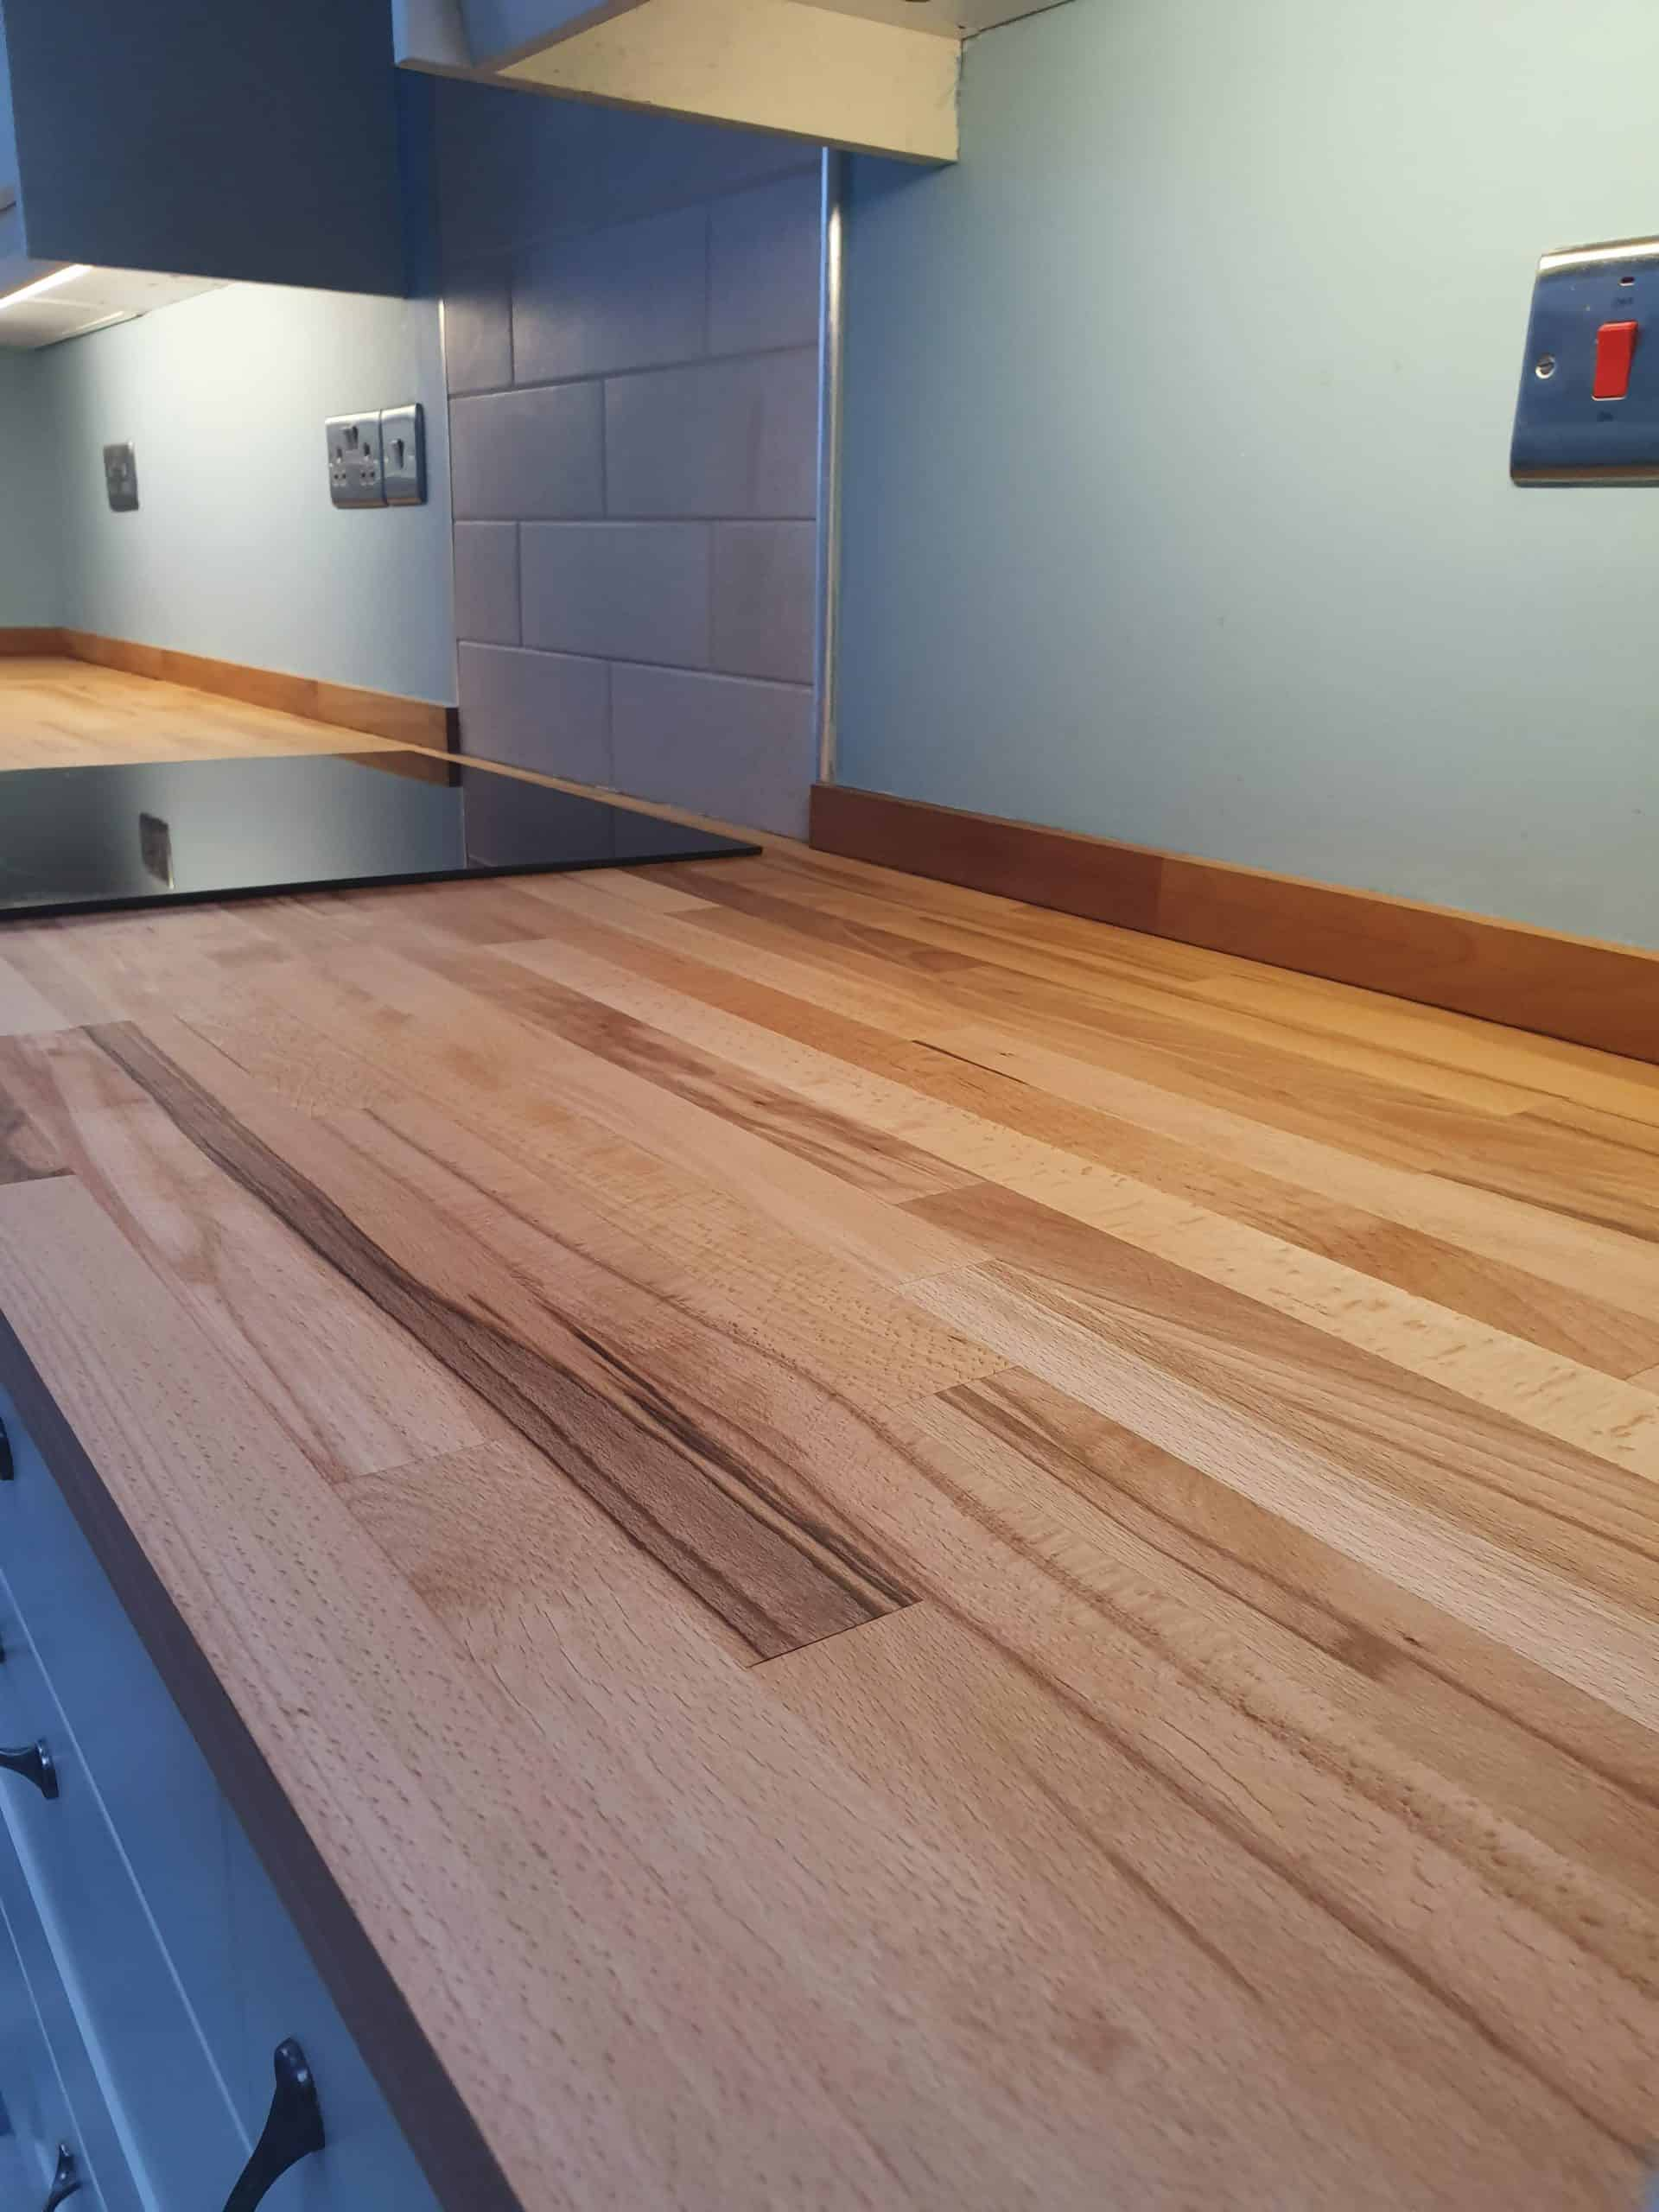 Wooden Worktop Sanded and Finished with Magic Oil 2K